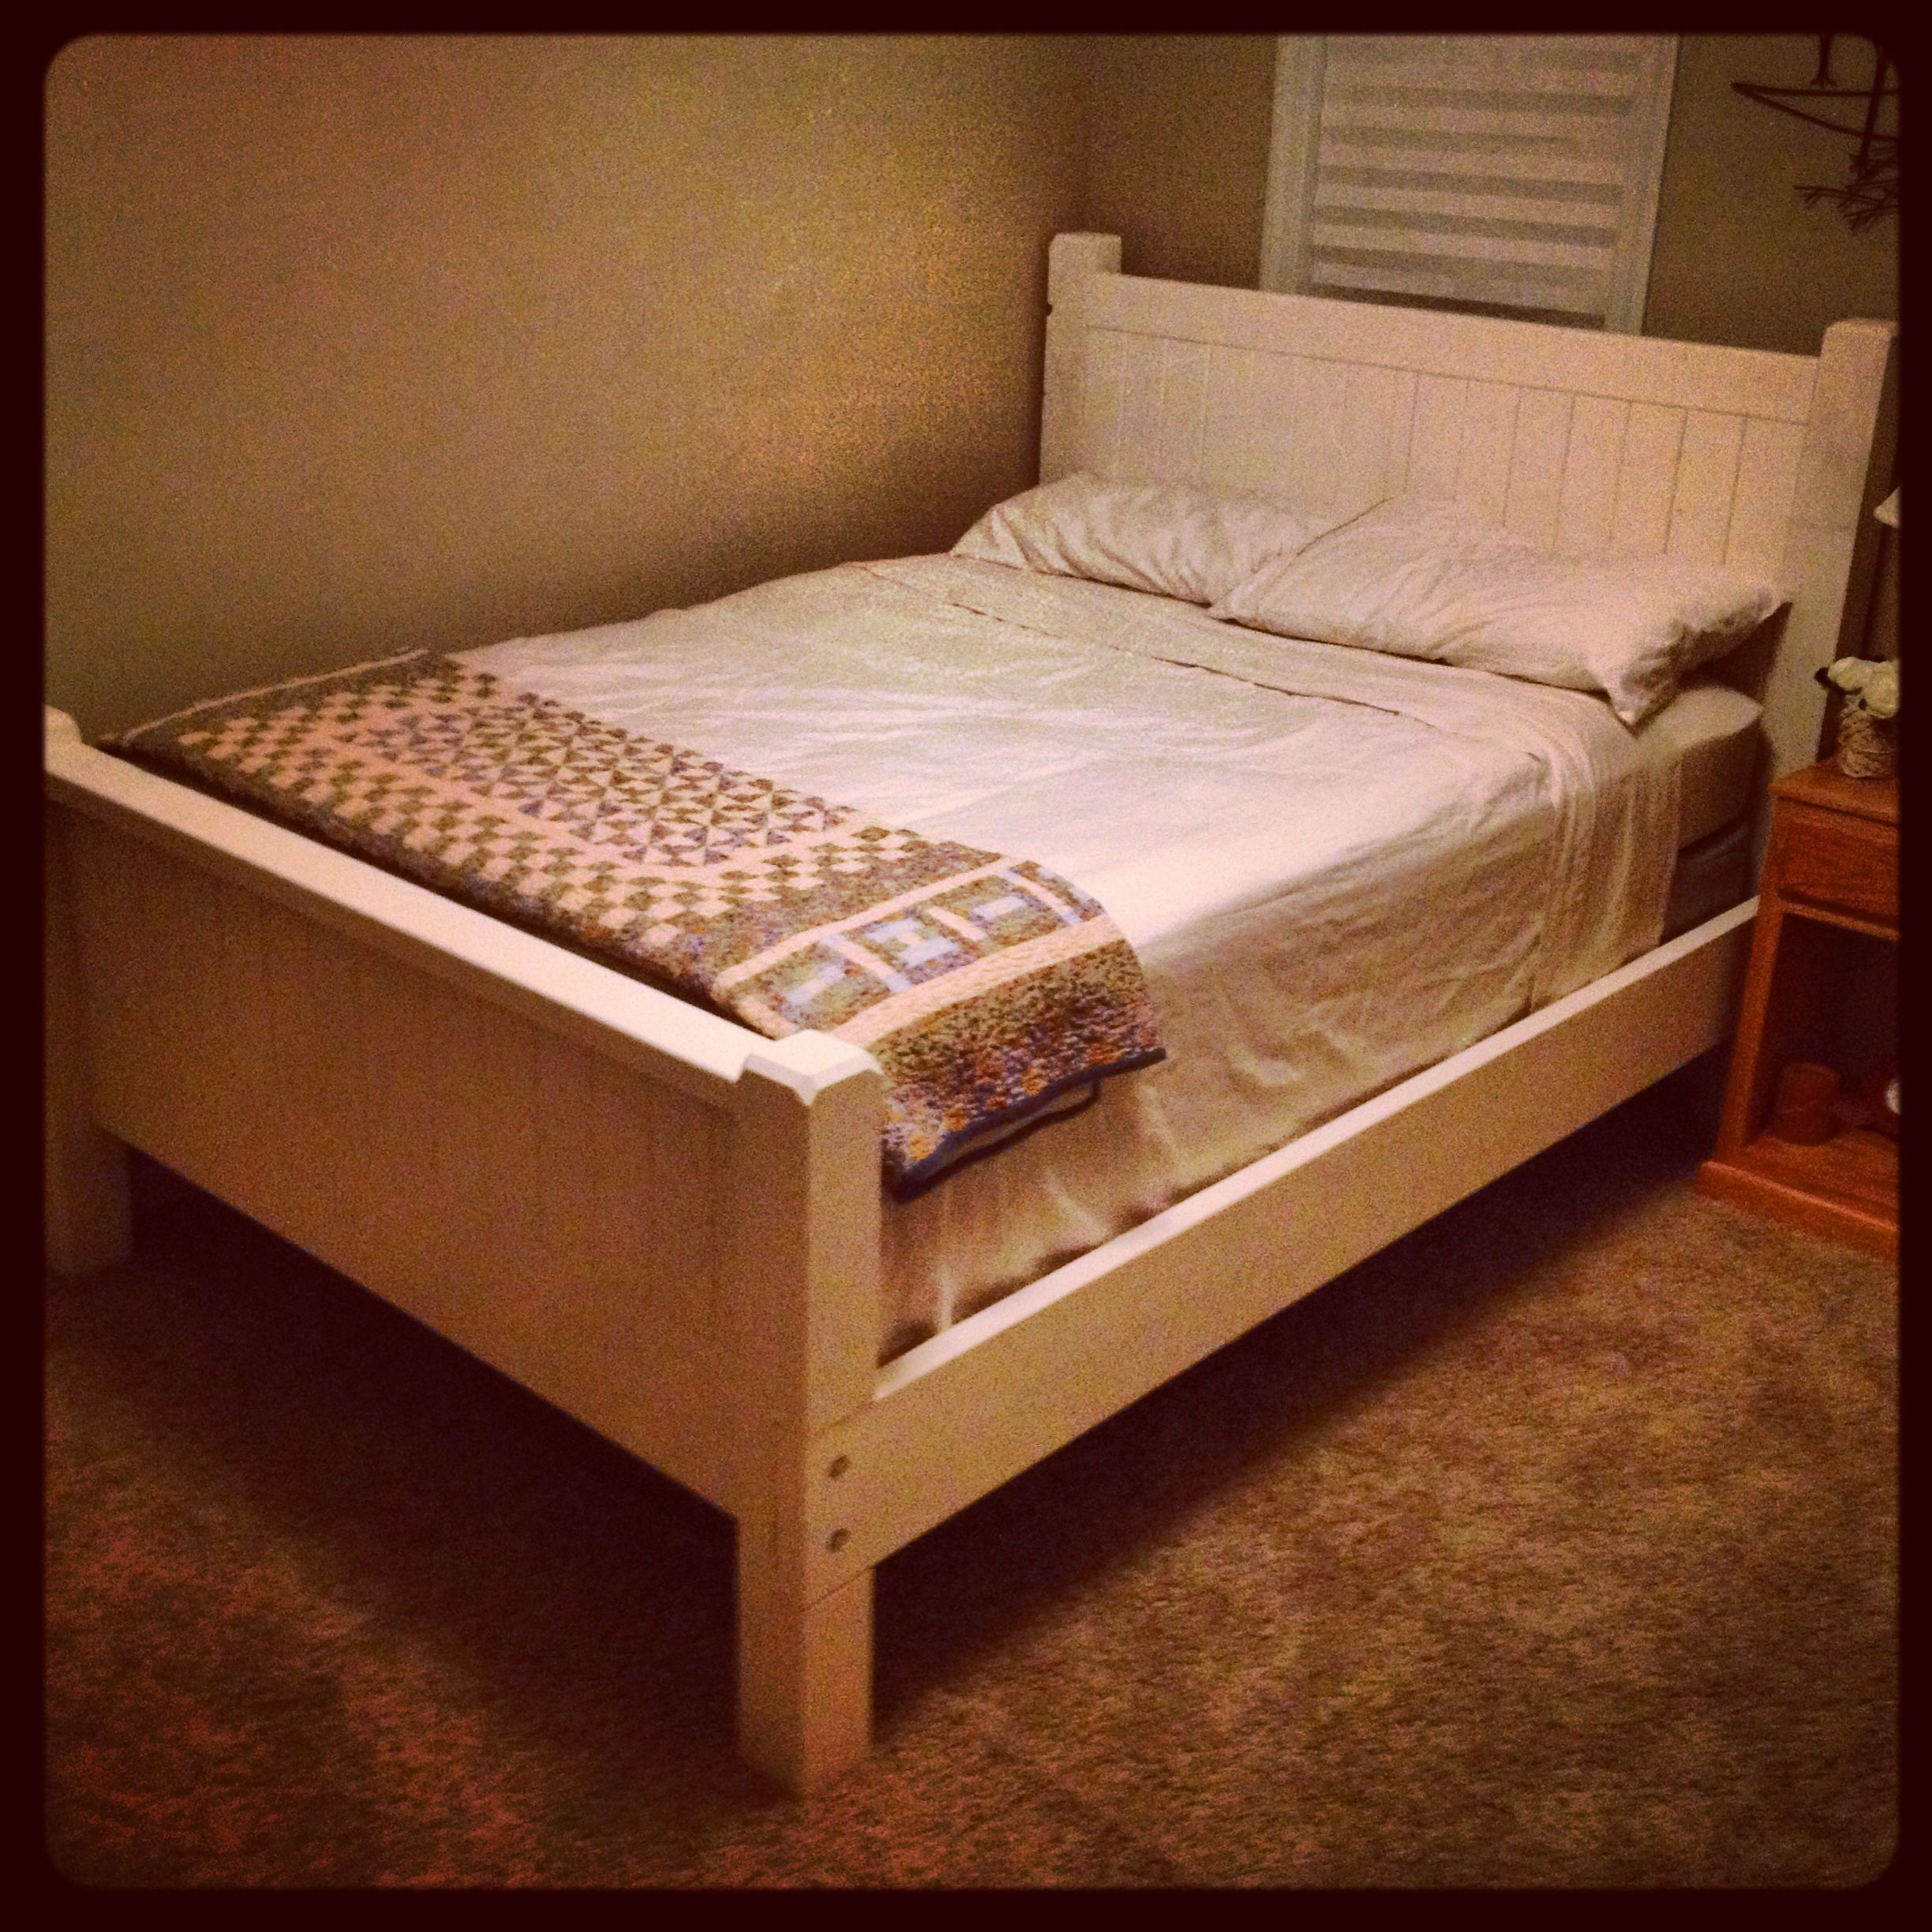 DIY Vintage White Country Bed Frame, full size made from